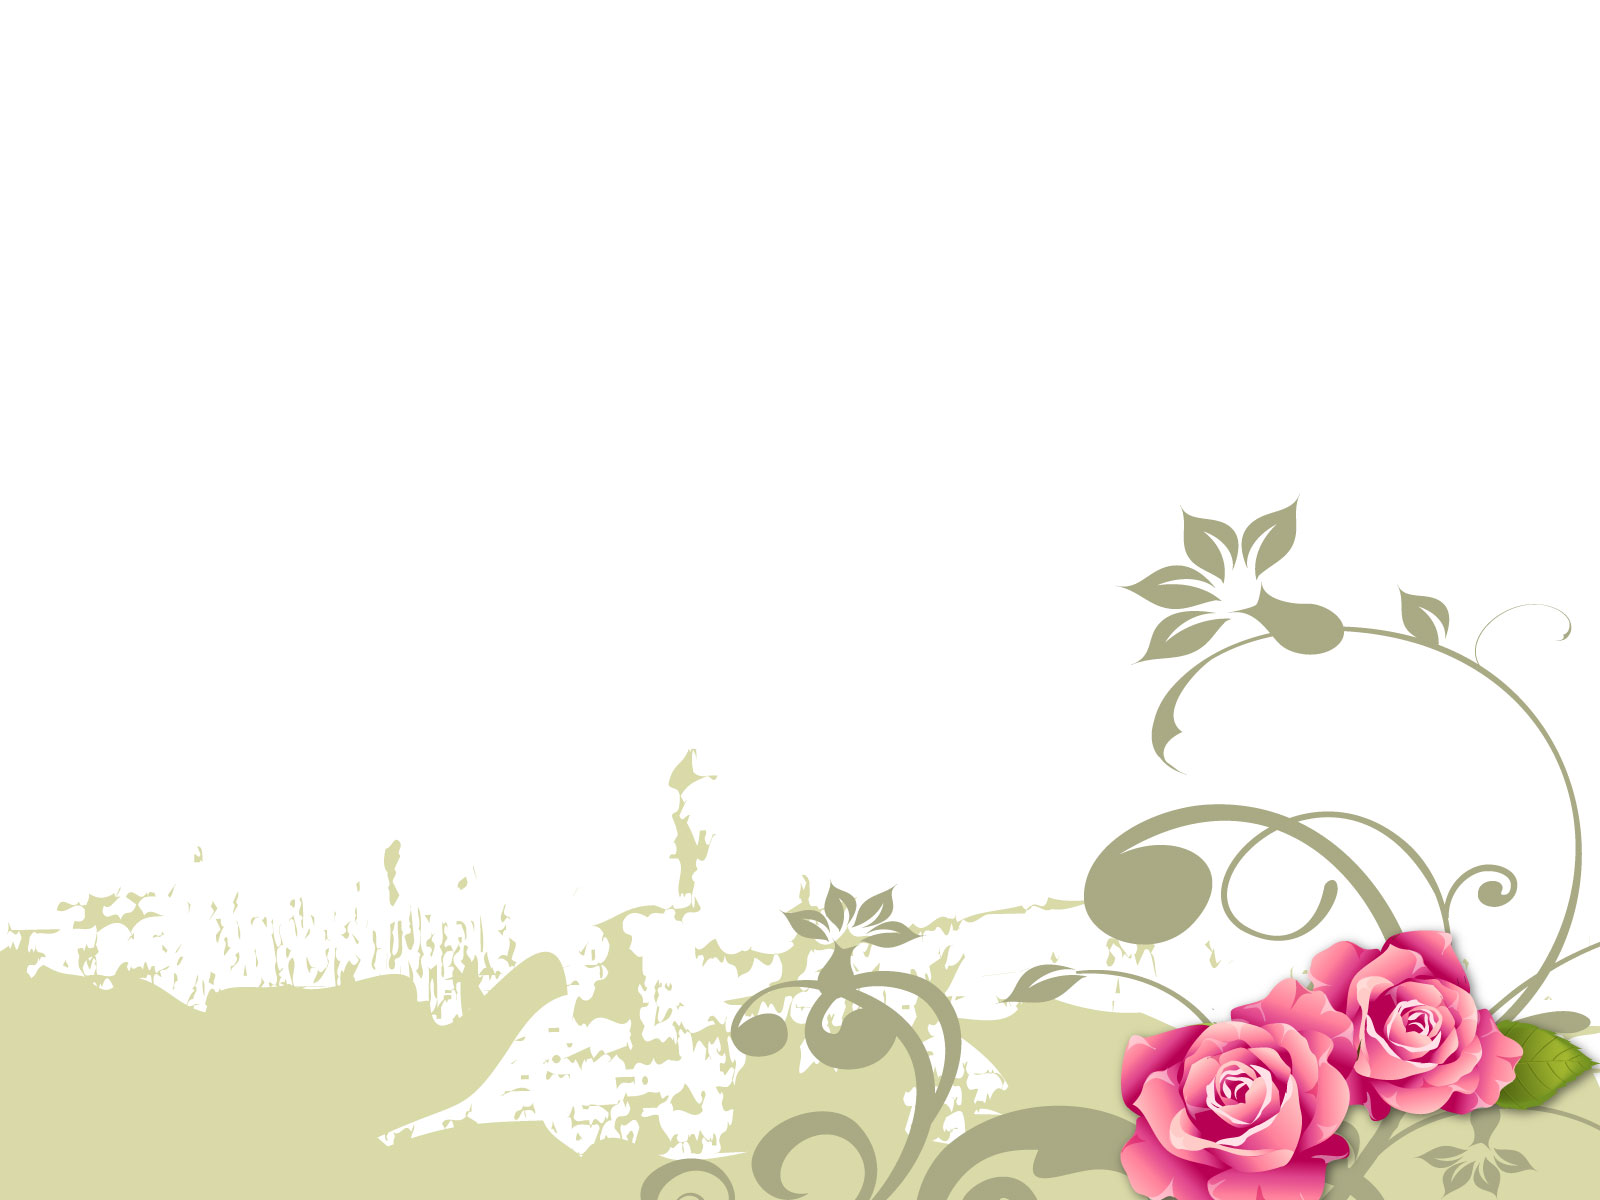 Background images with flowers - ClipartFest jpg freeuse stock